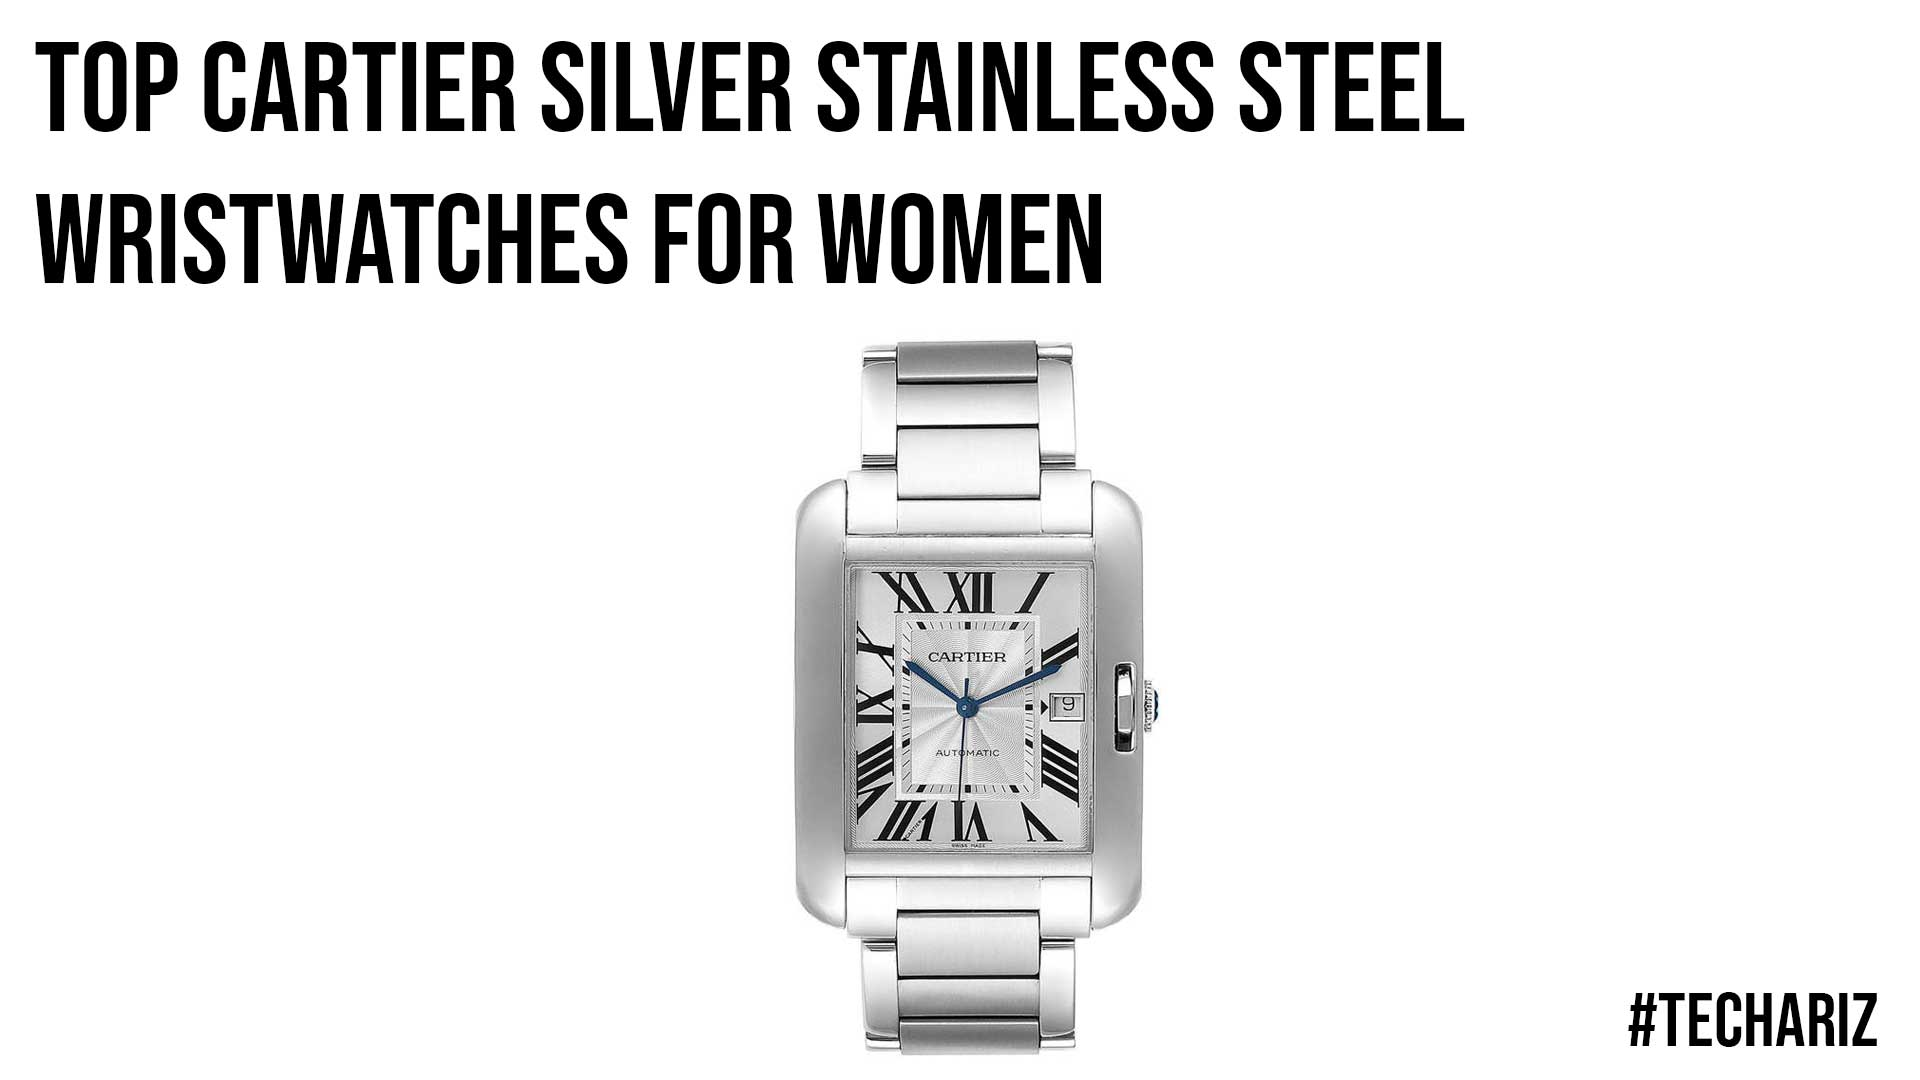 Top Cartier Silver Stainless Steel Wristwatches for Women